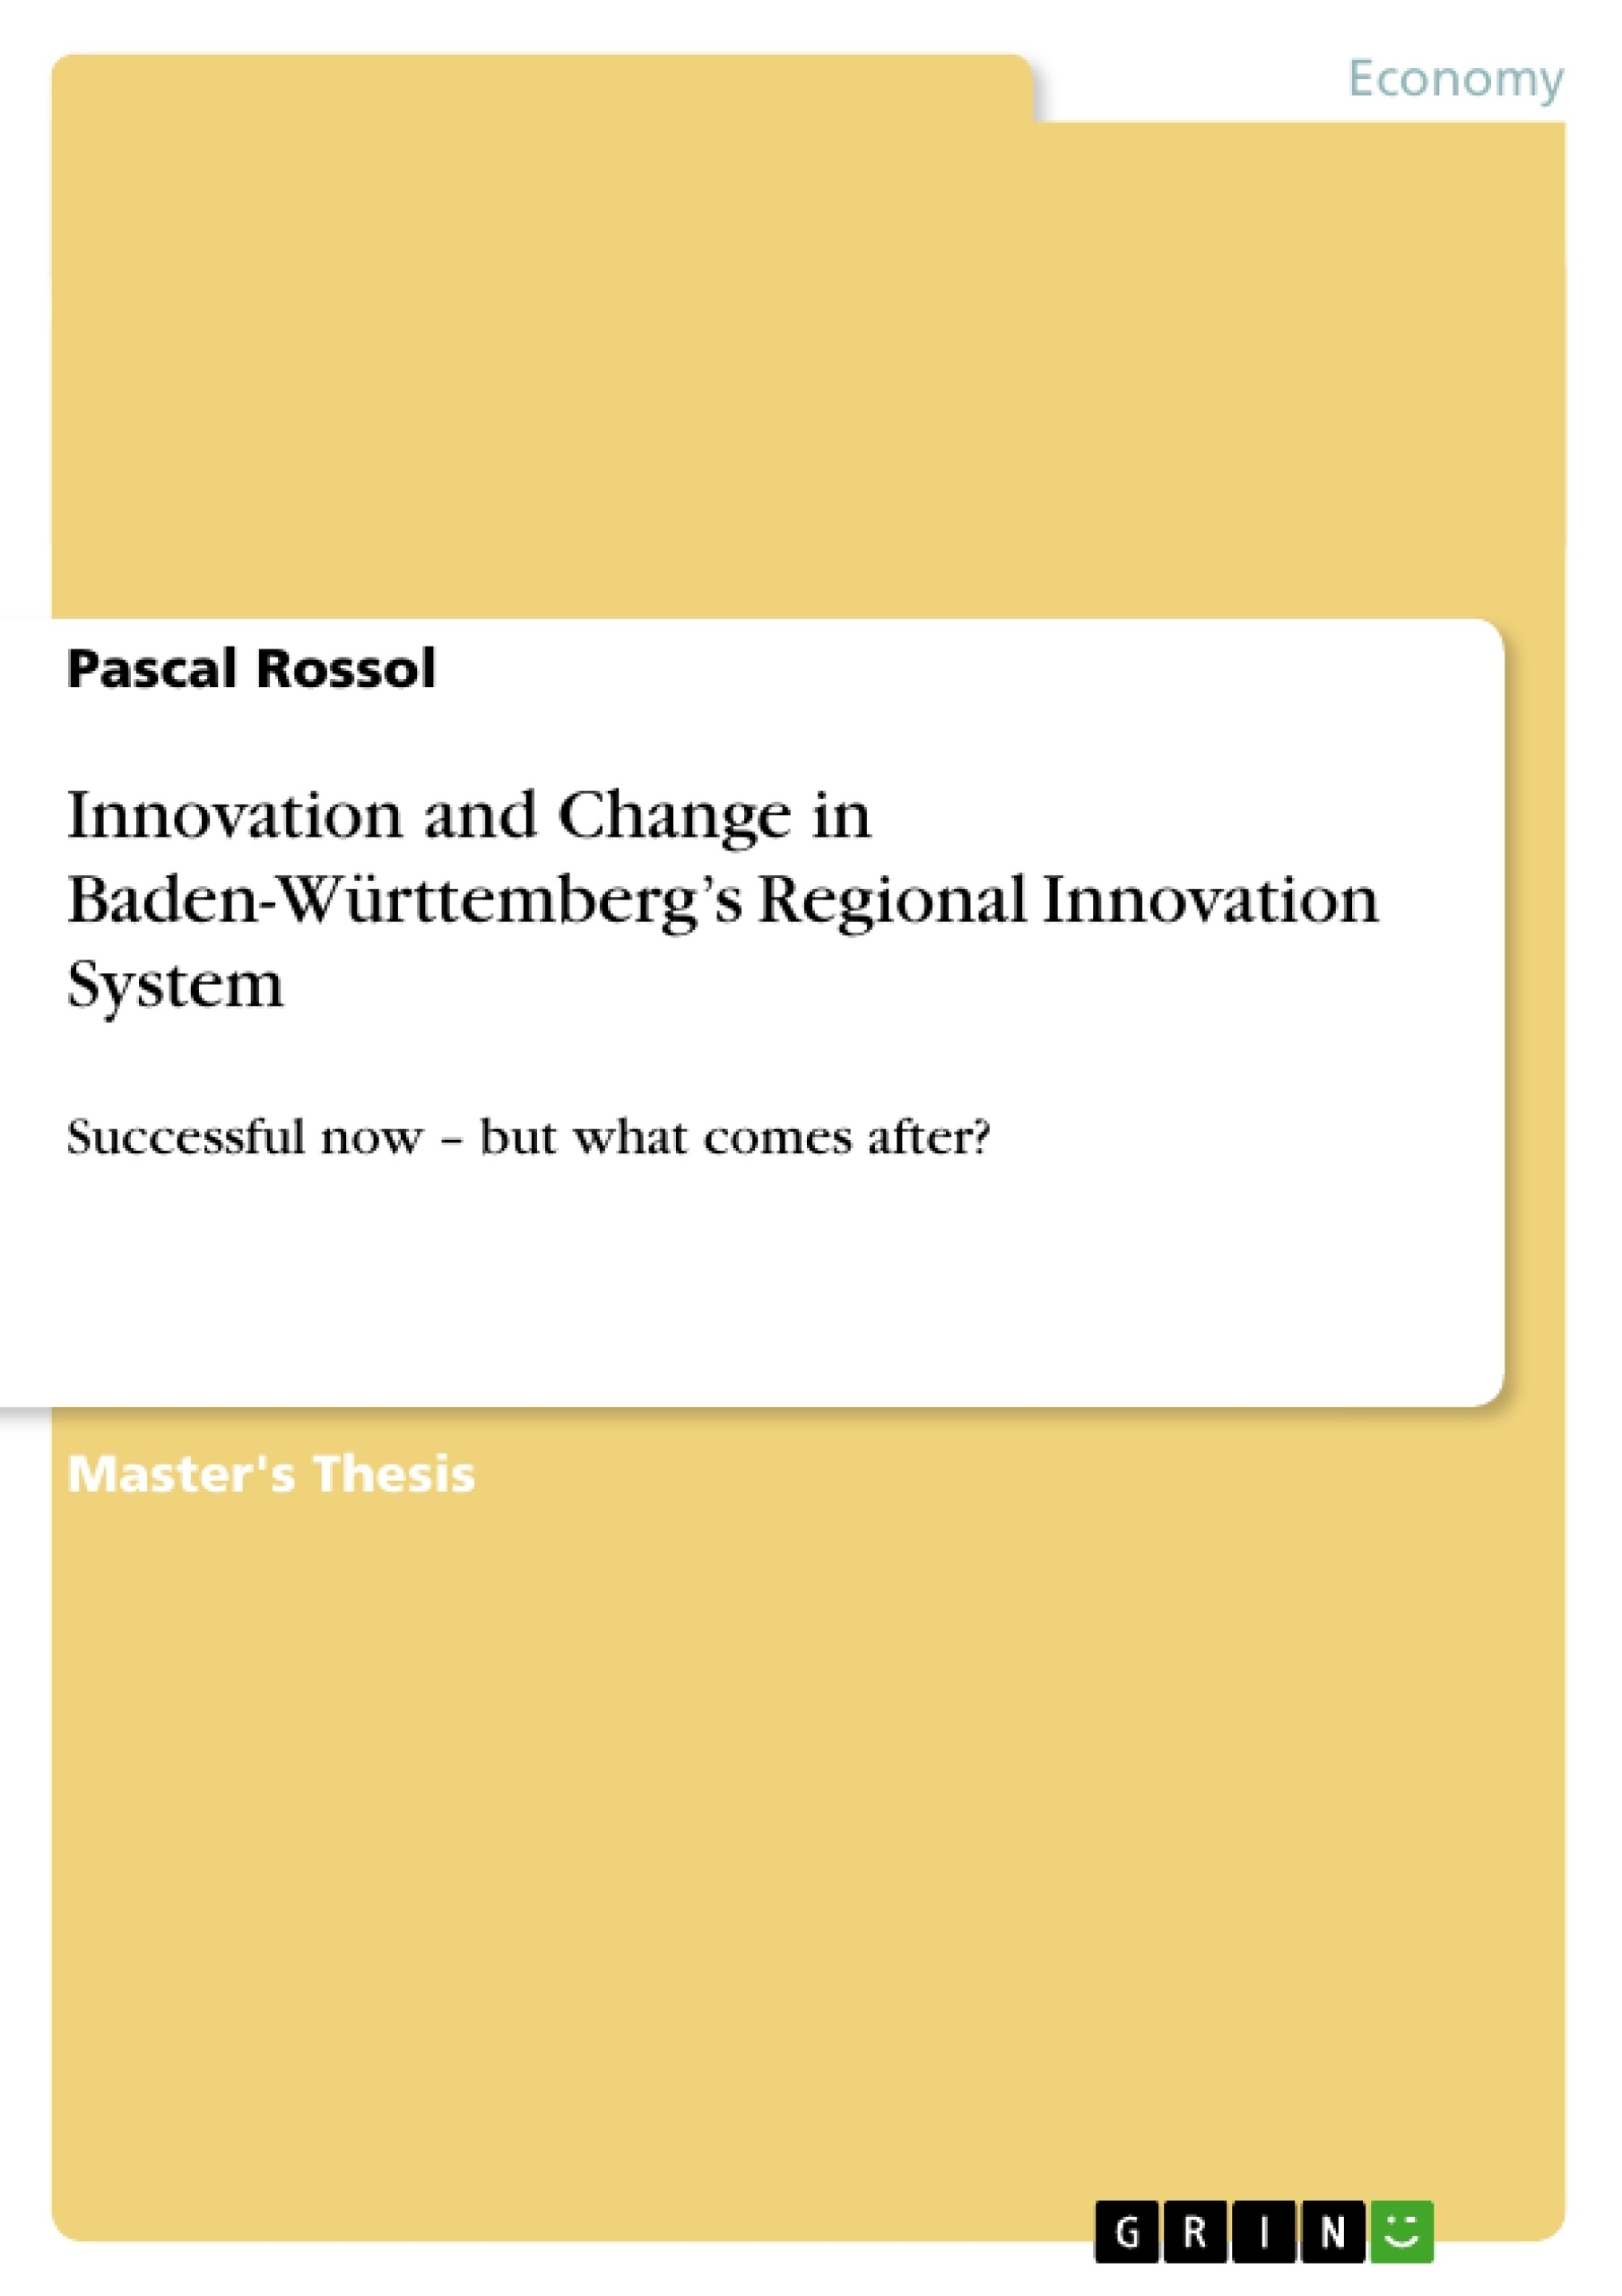 Title: Innovation and Change in Baden-Württemberg's Regional Innovation System